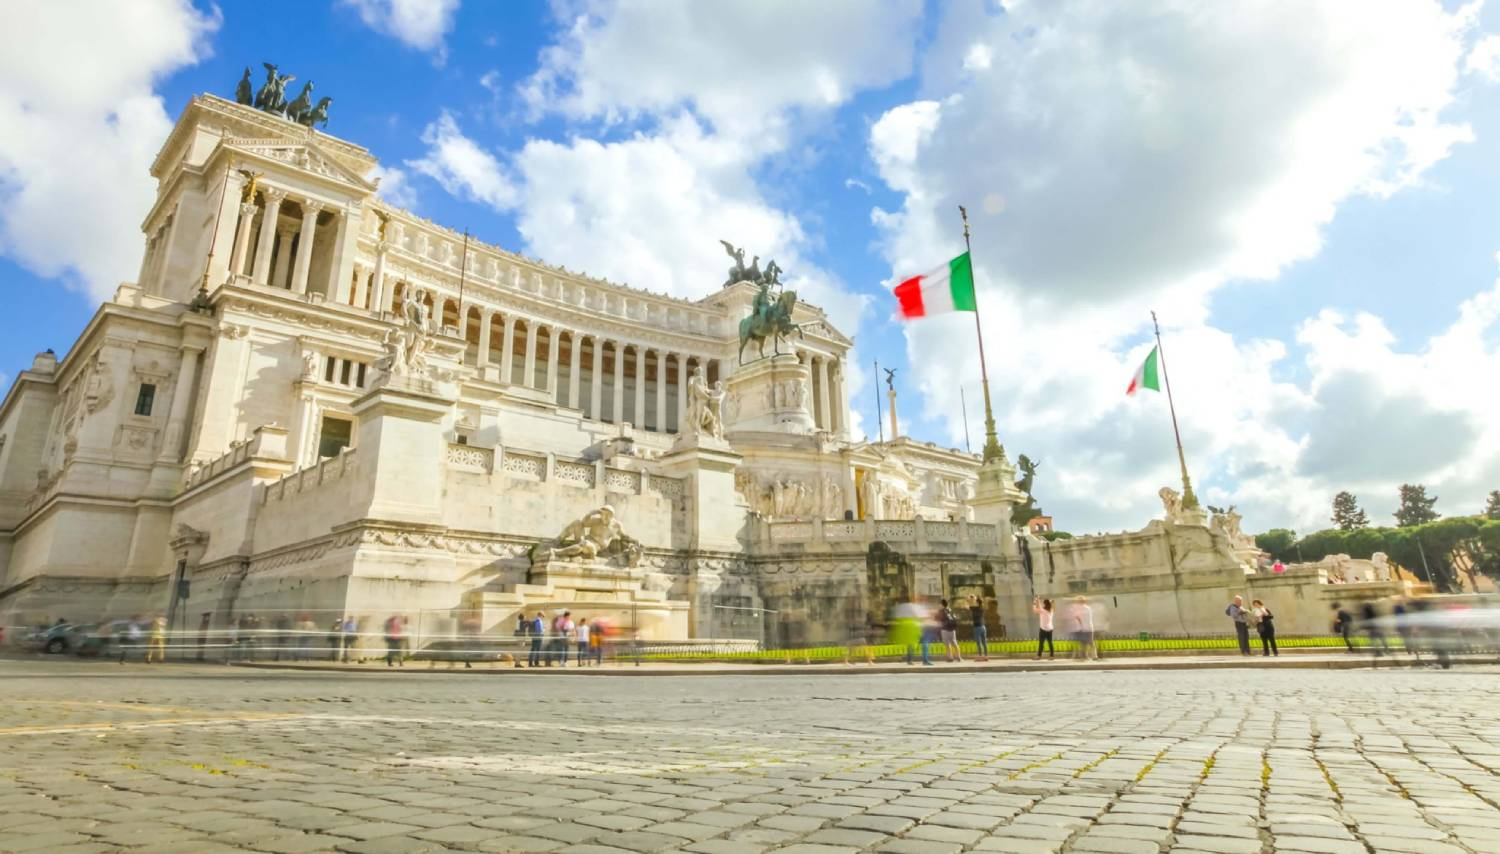 Piazza Venezia - Things To Do In Rome